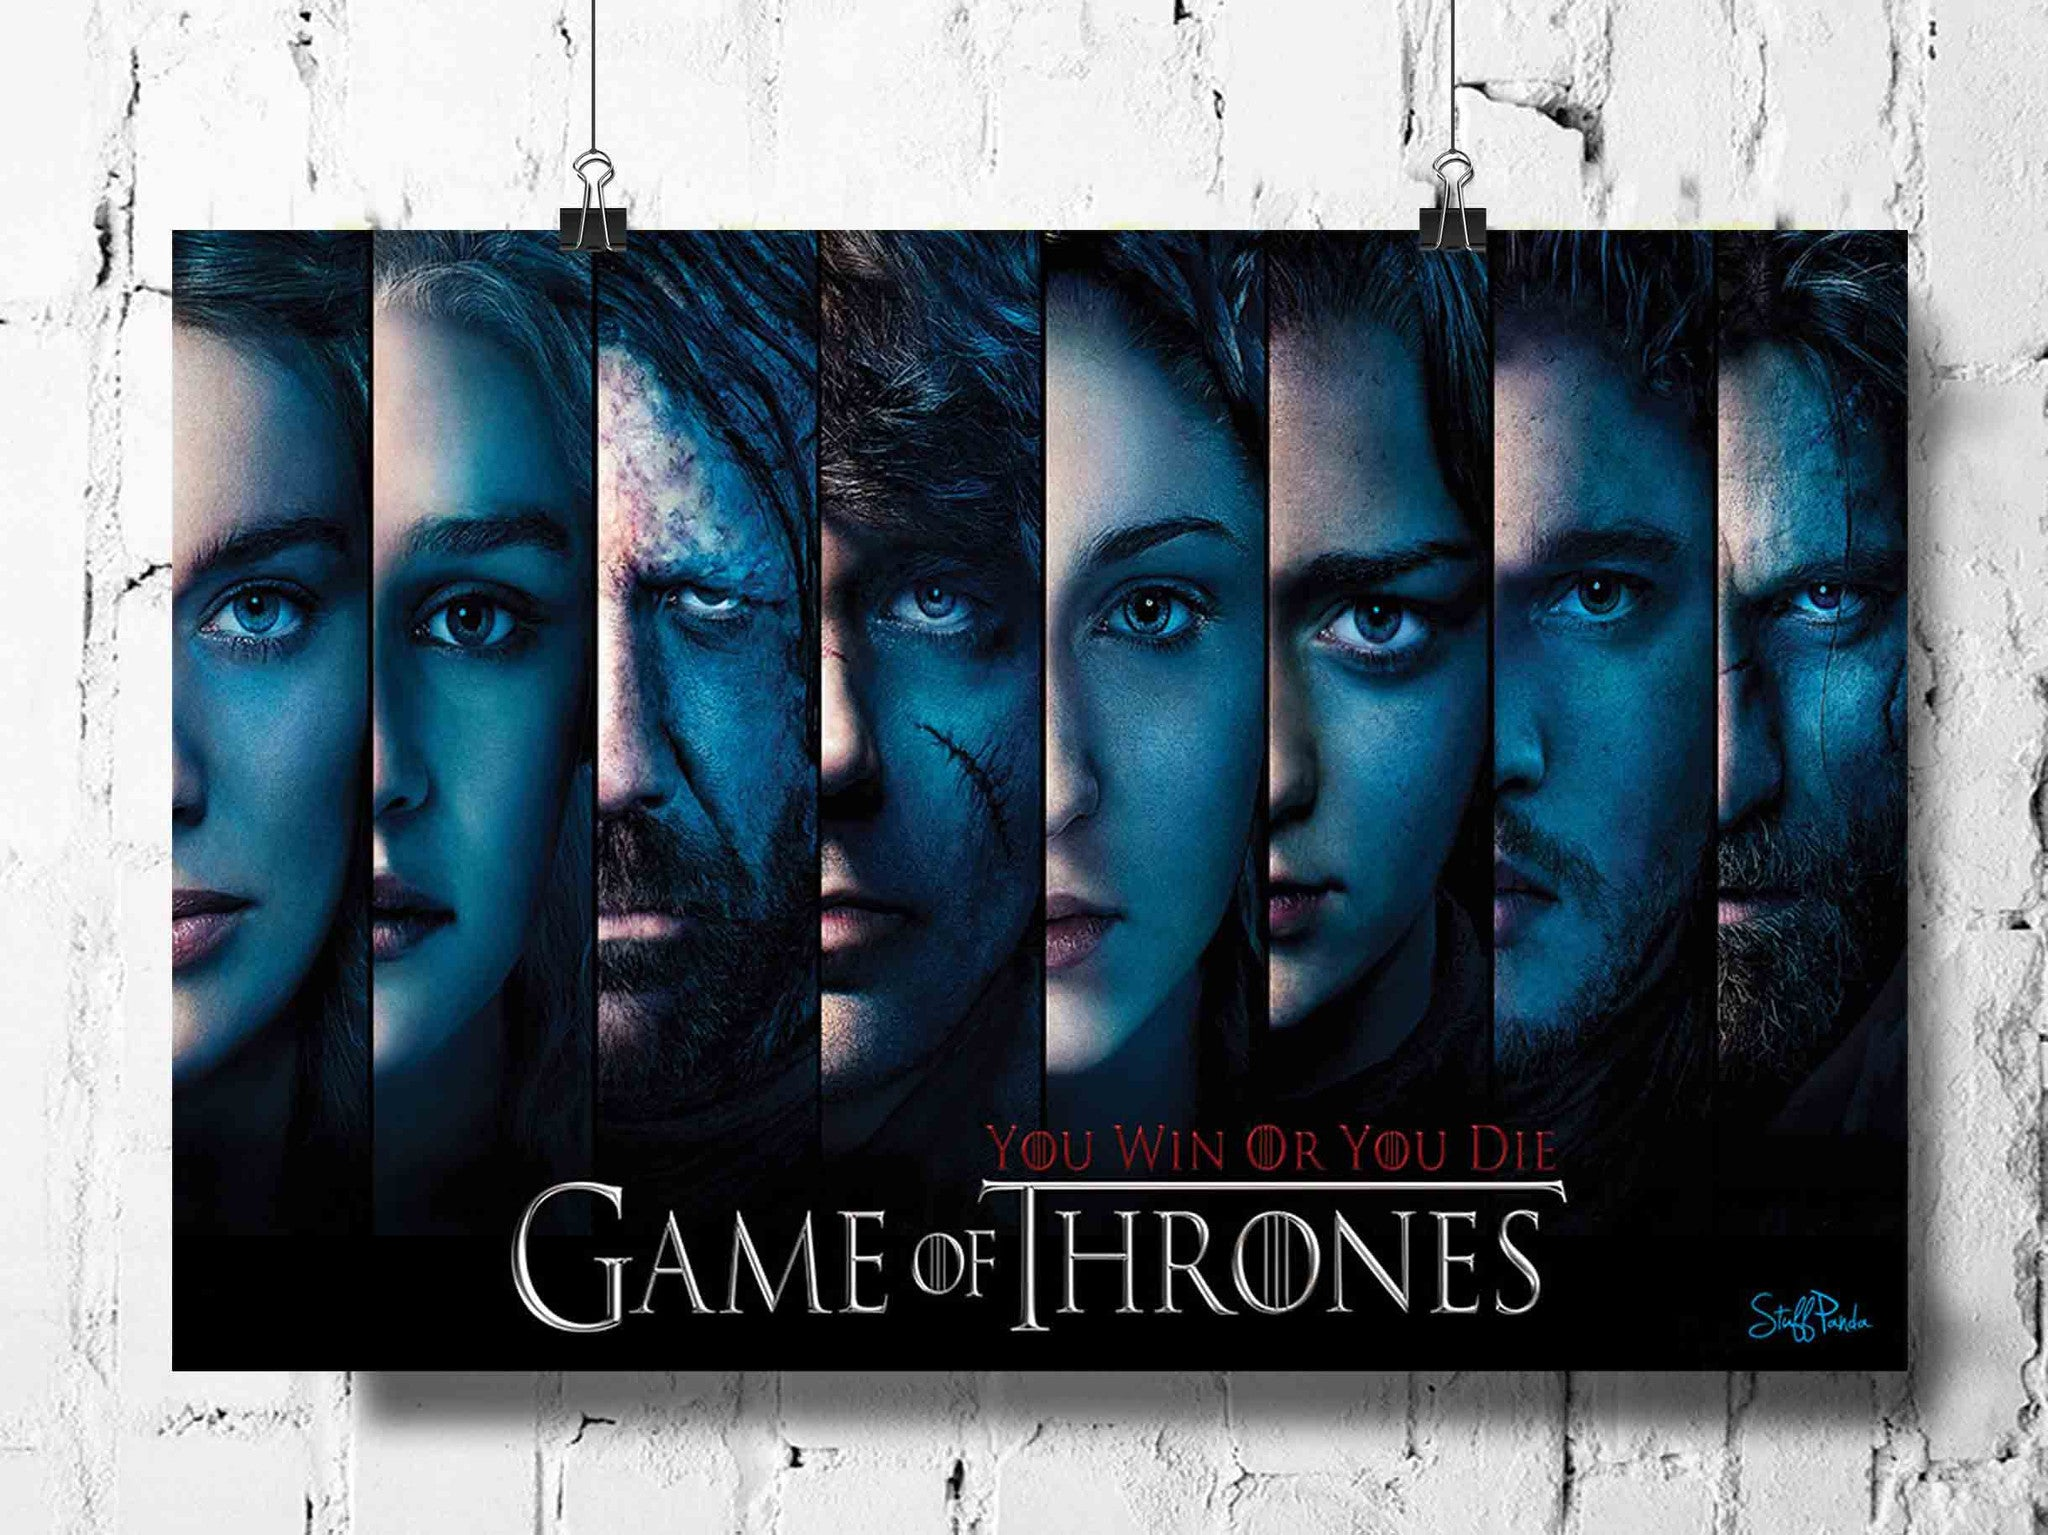 Game Of Thrones Wall Art cool funky game of thrones wall posters, art prints, stickers